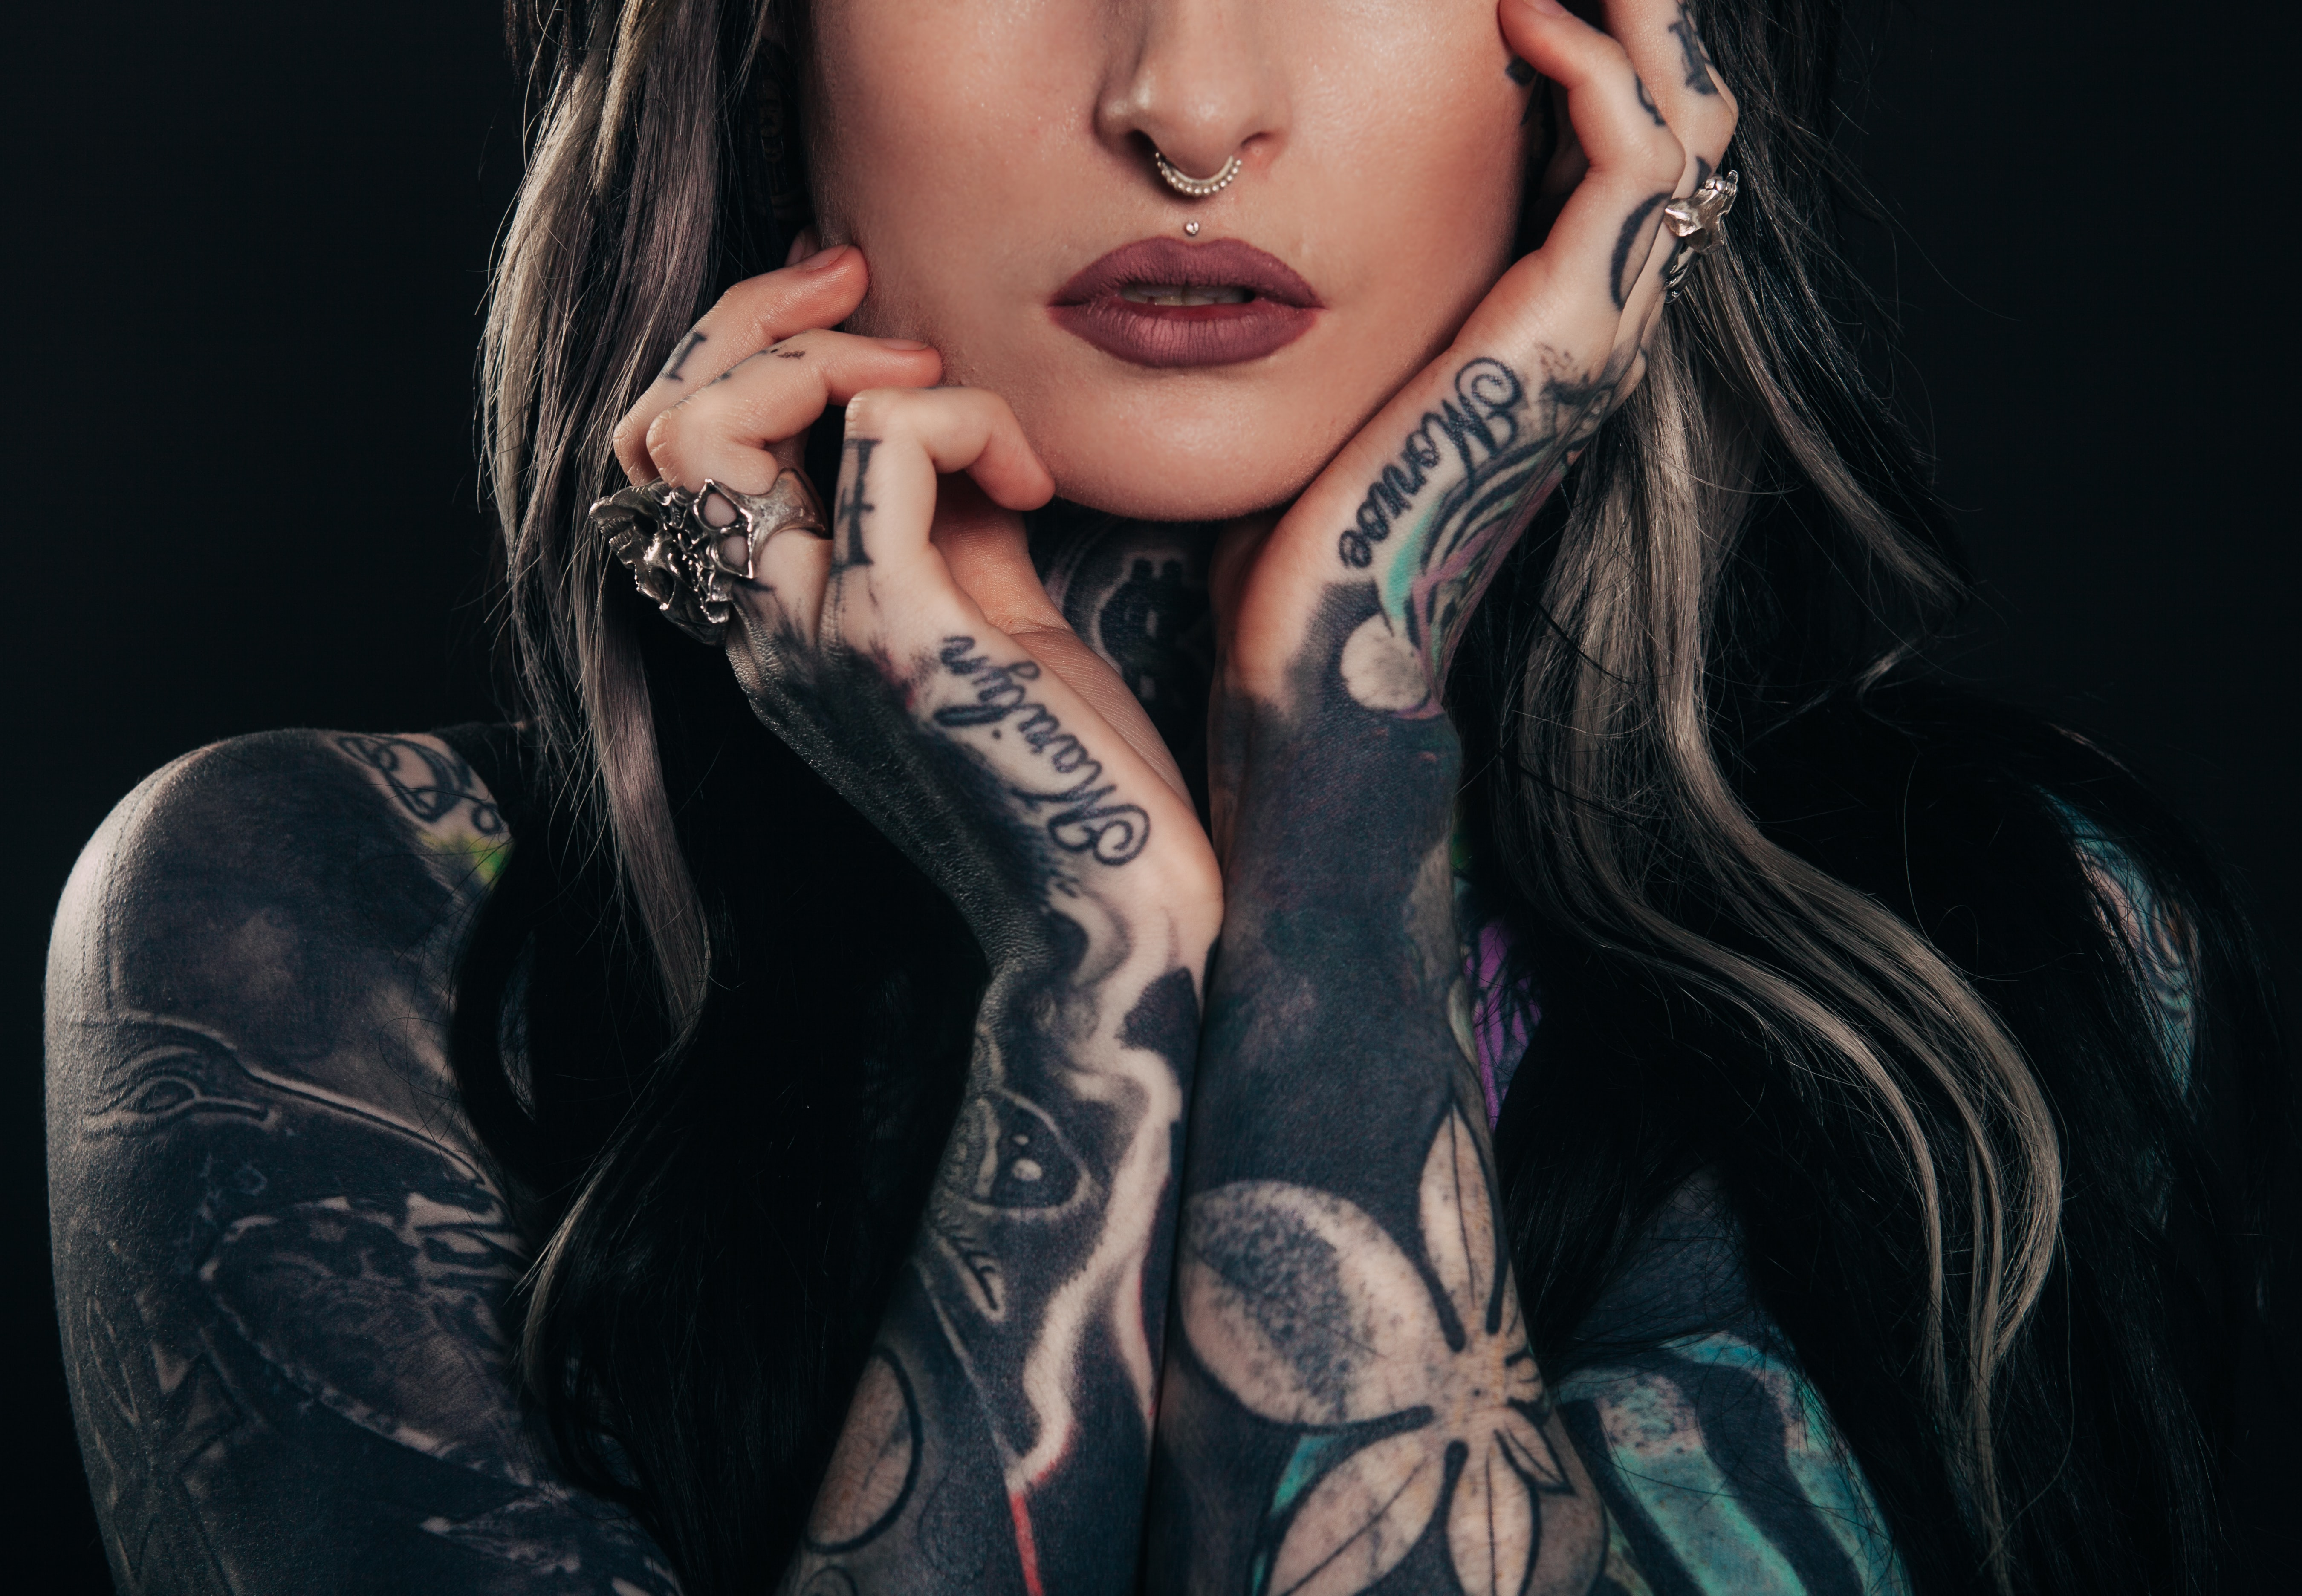 Edgy woman with tattoos and a piercing holds her hands against her face